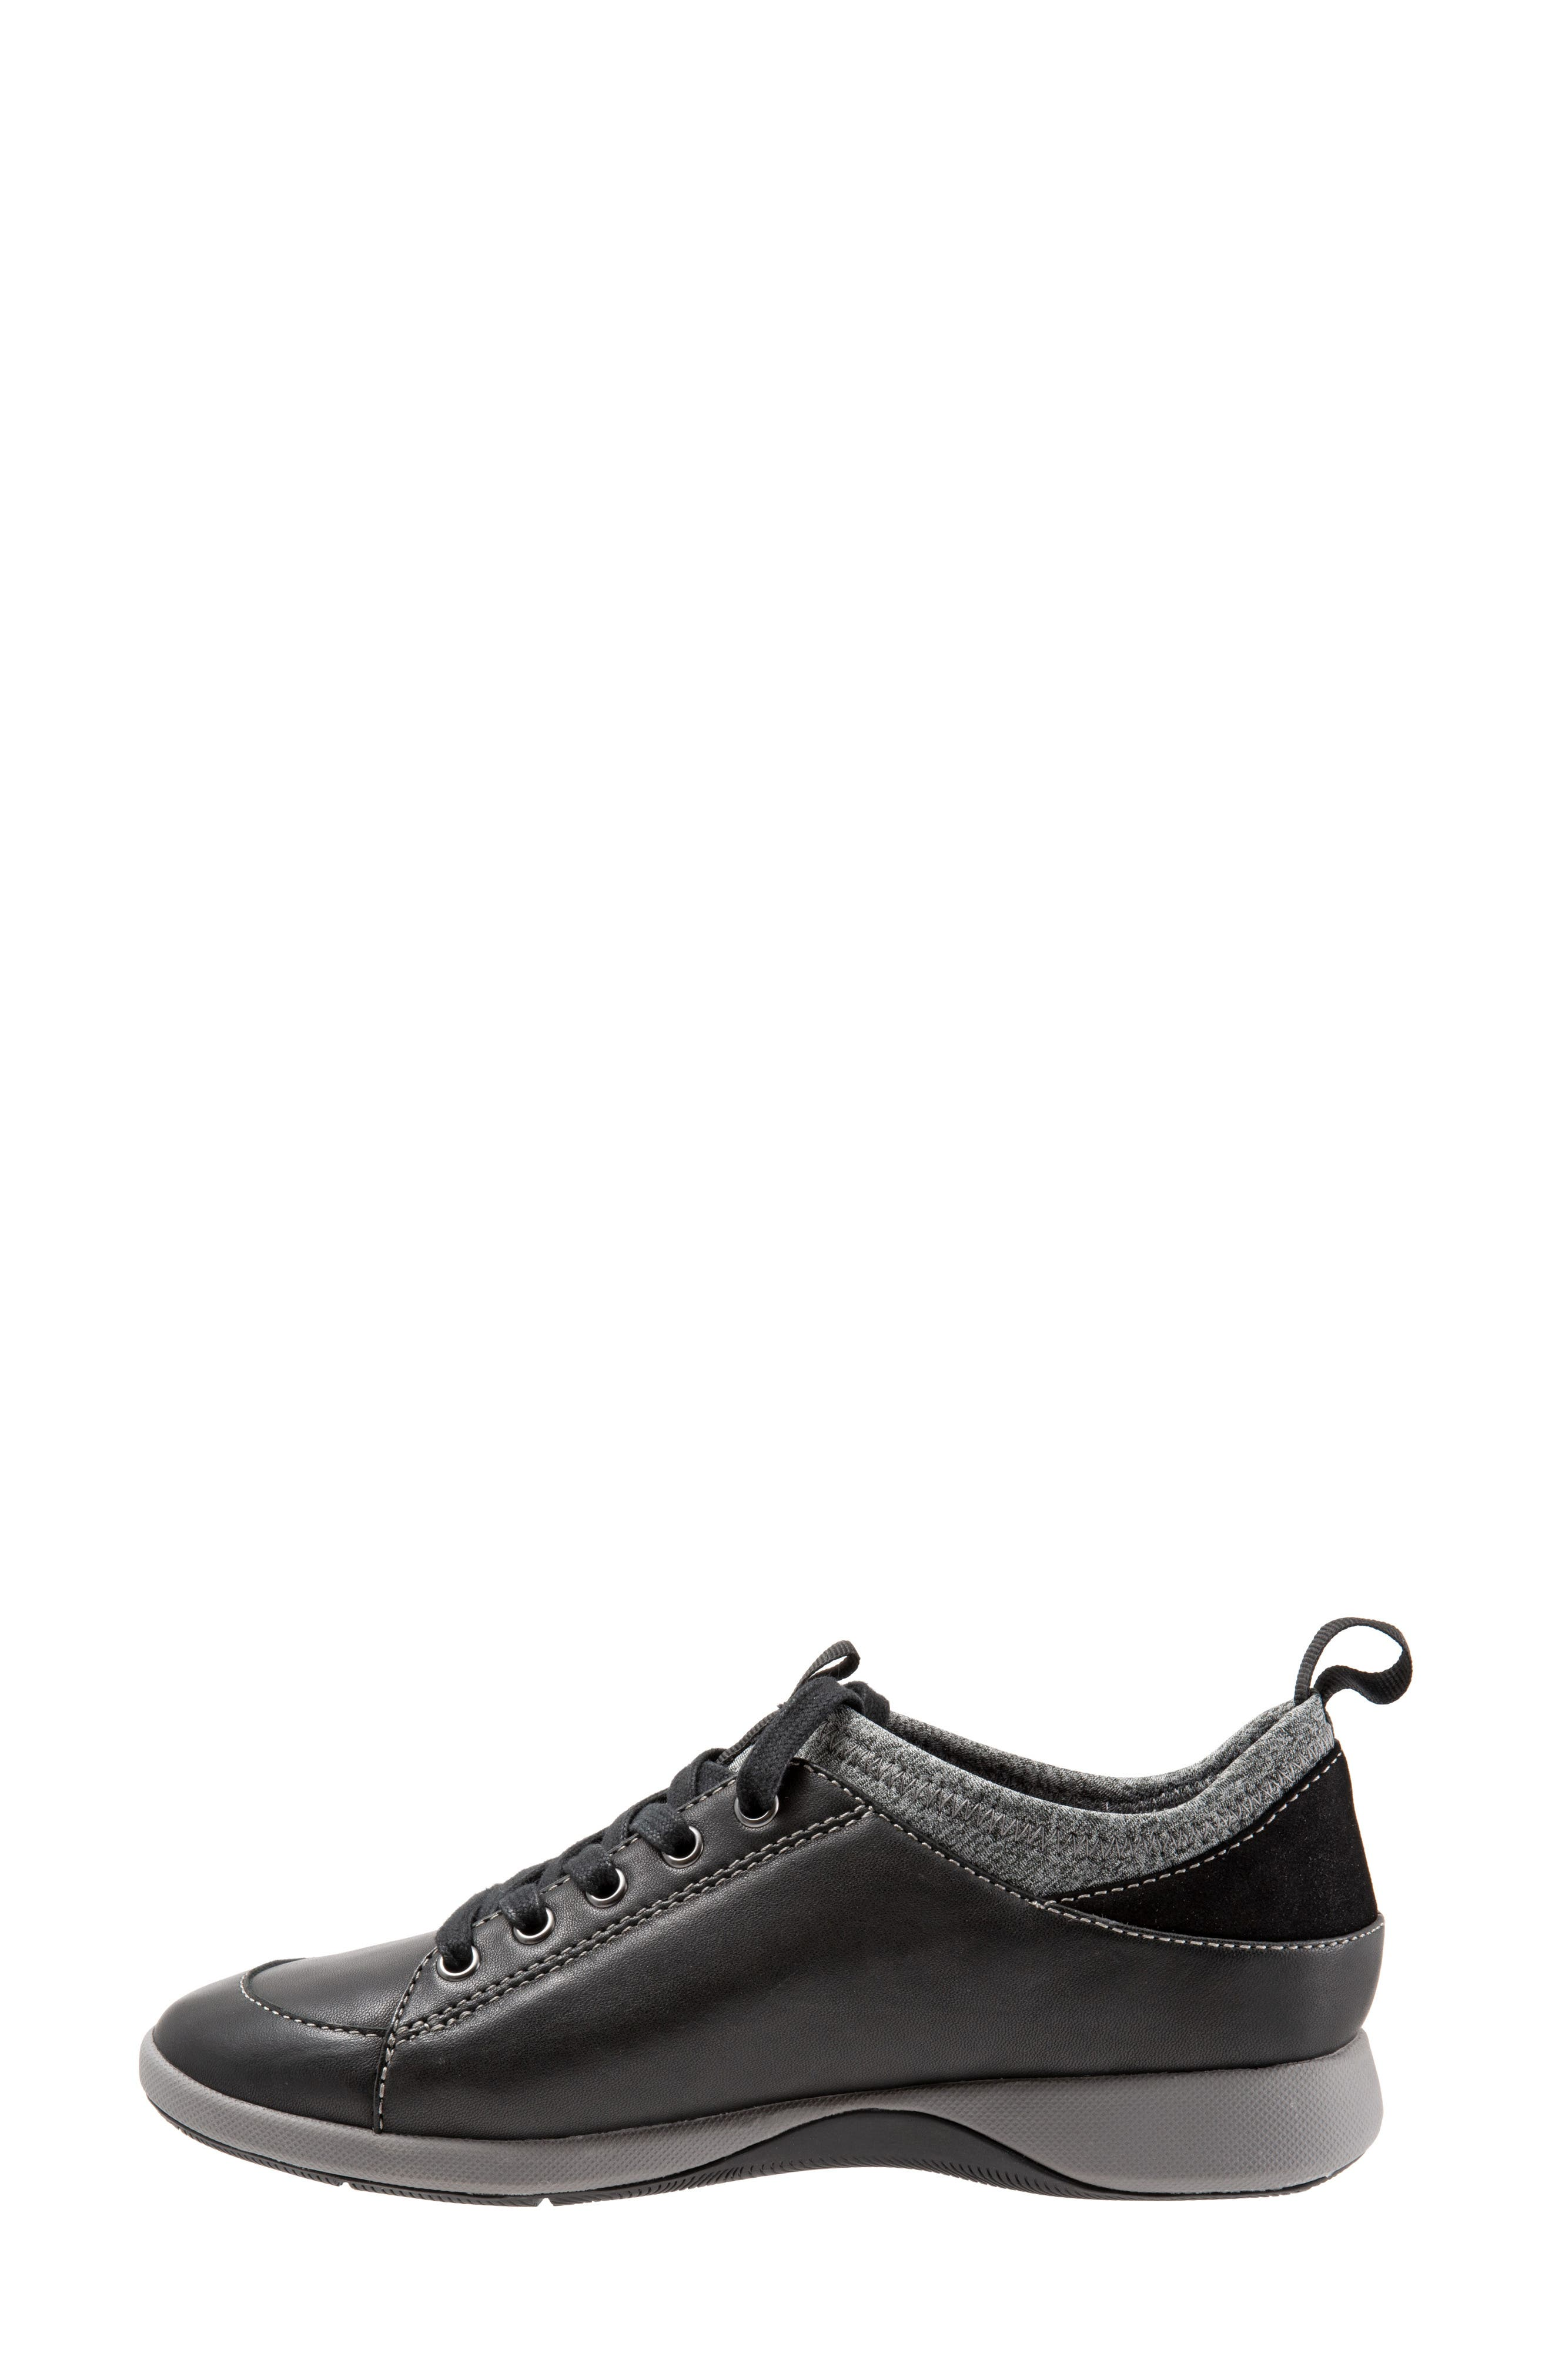 SAVA Haven Sneaker,                             Alternate thumbnail 9, color,                             BLACK/ GREY LEATHER